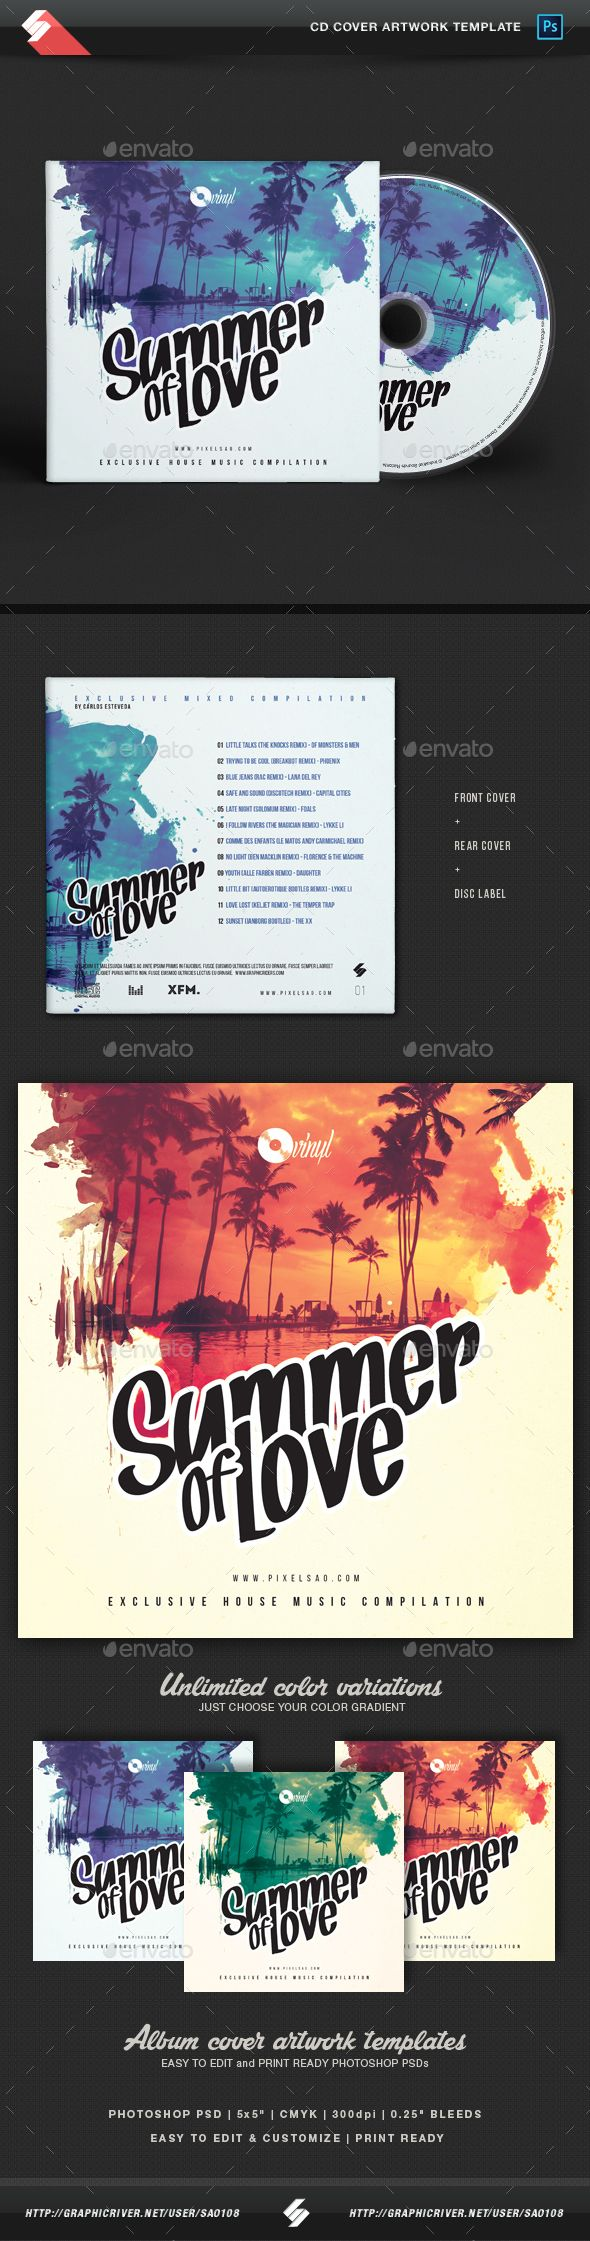 Summer Of Love - CD Cover Artwork Template PSD. Download here: https://graphicriver.net/item/summer-of-love-cd-cover-artwork-template-/17353229?ref=ksioks